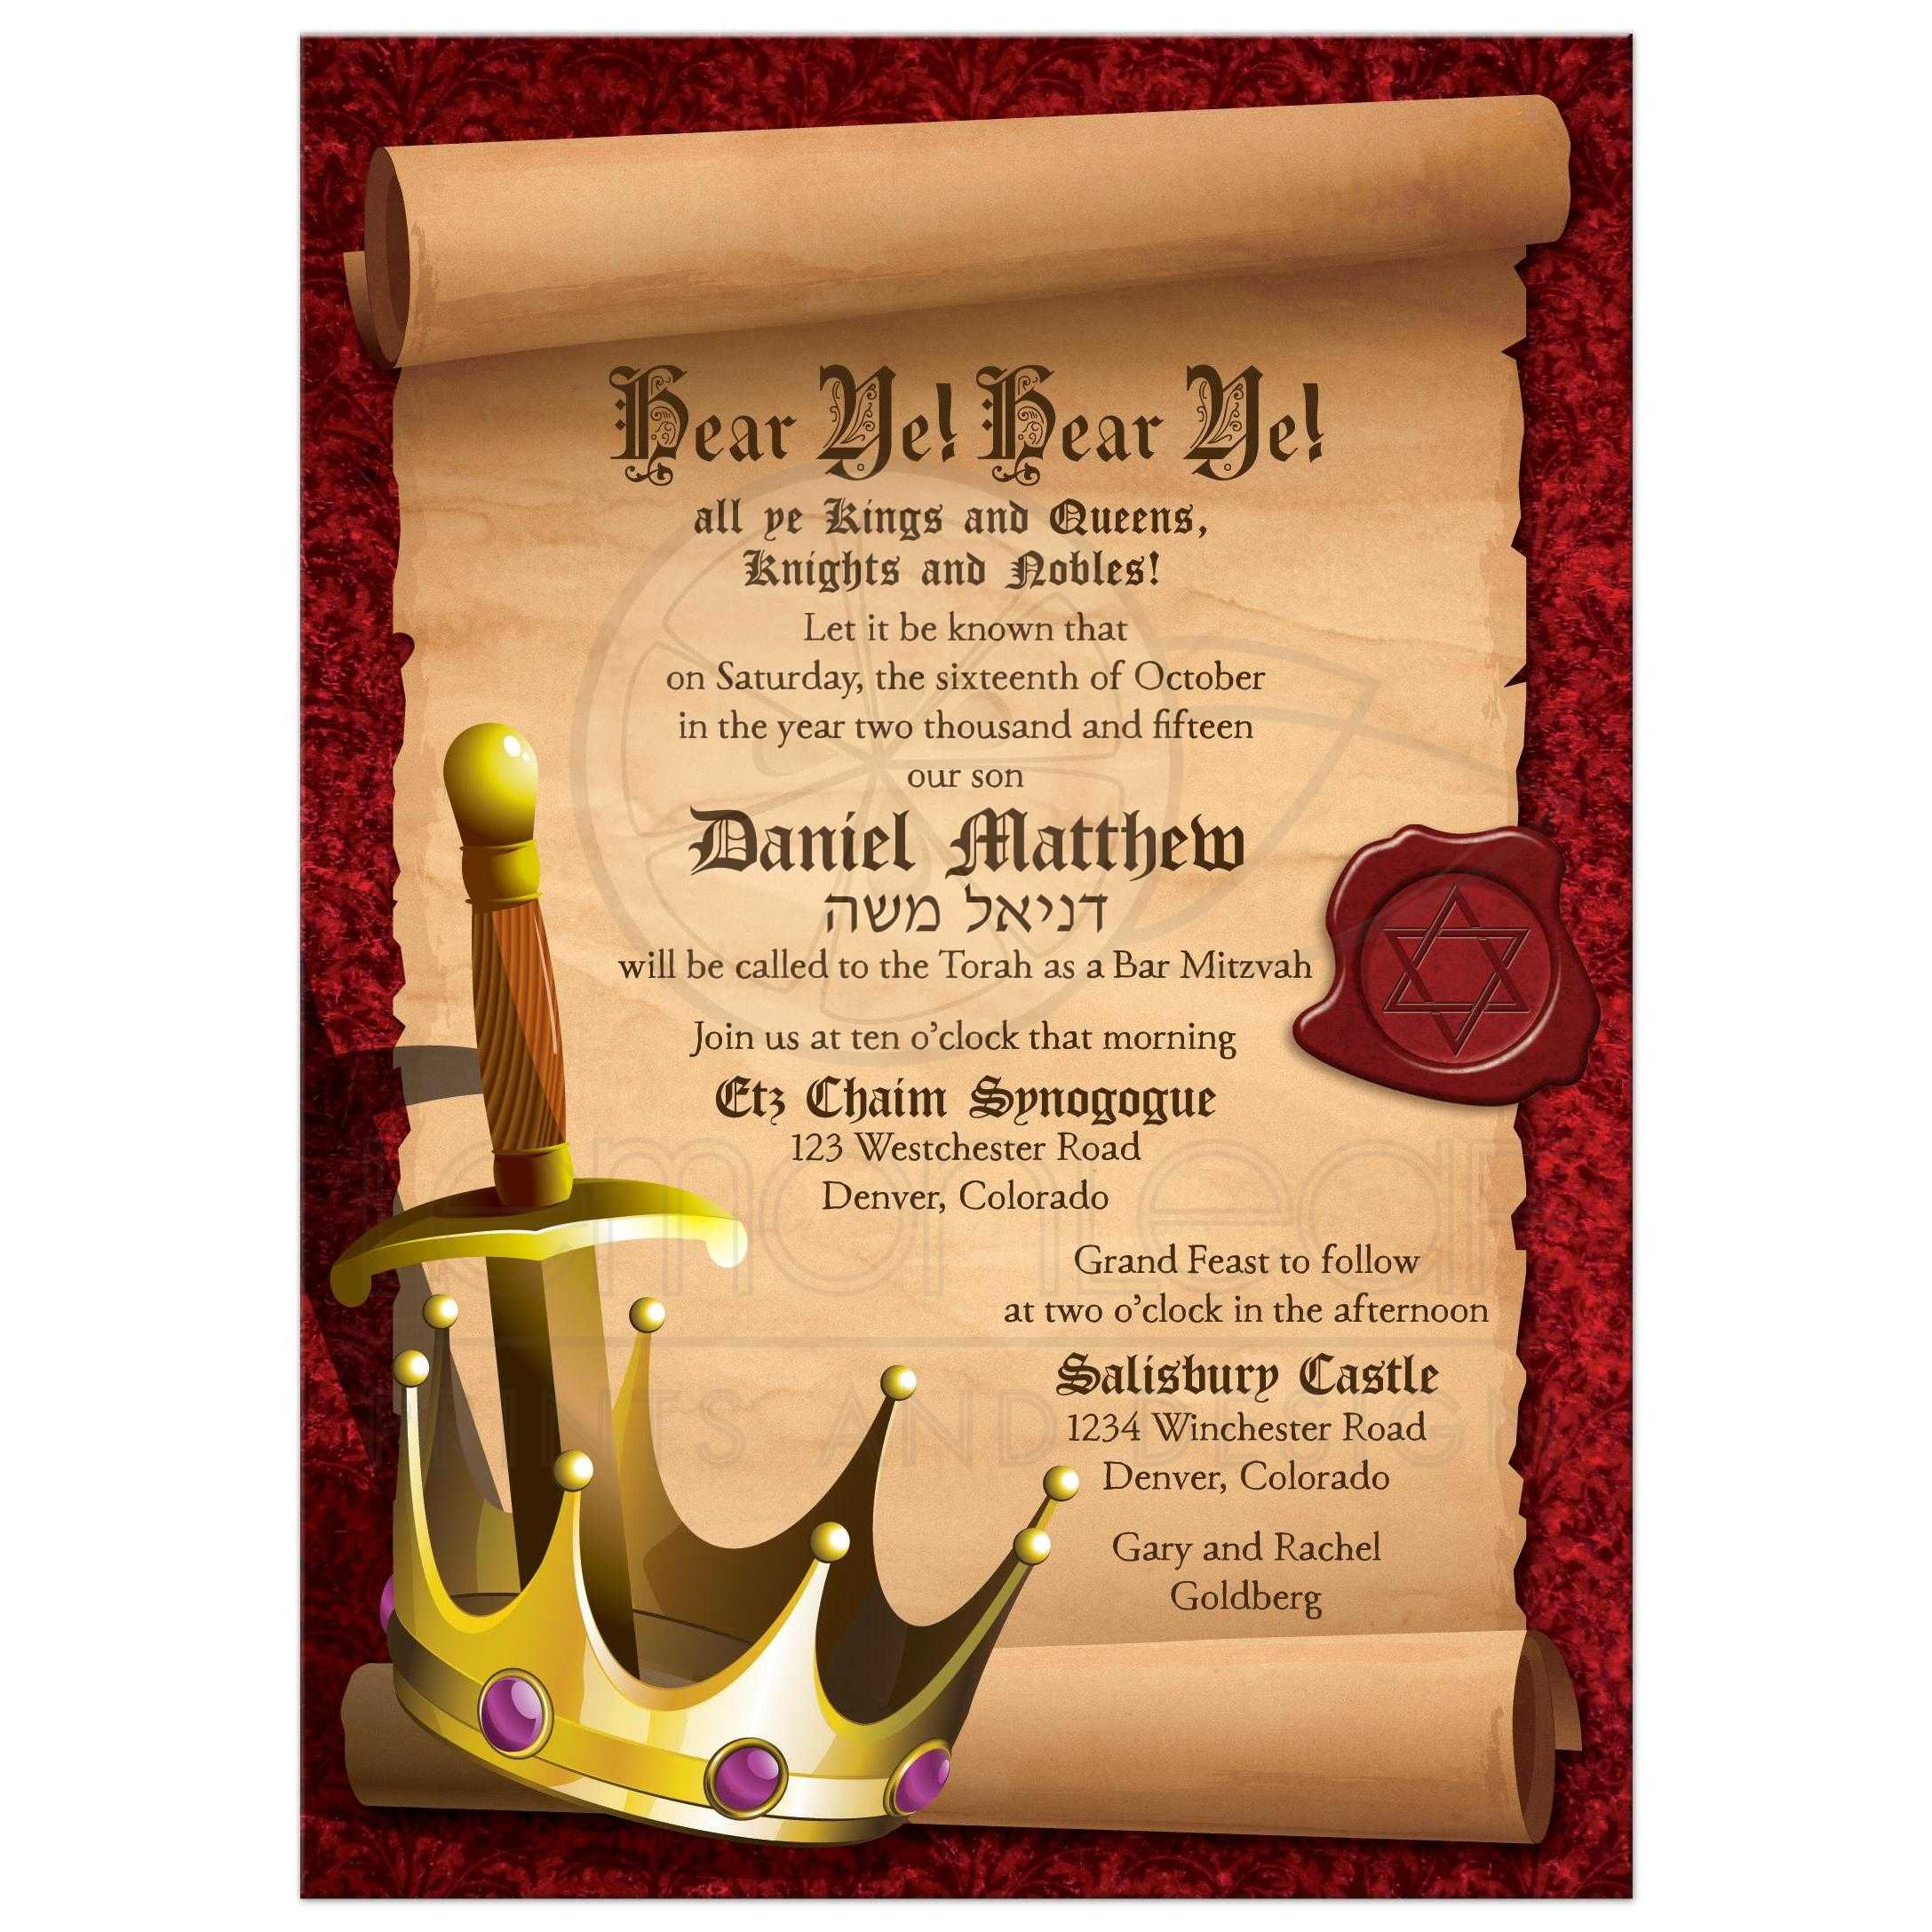 Fantasy knight bar mitzvah invitation medieval medieval fantasy knight sword and king crown bar mitzvah invitation front stopboris